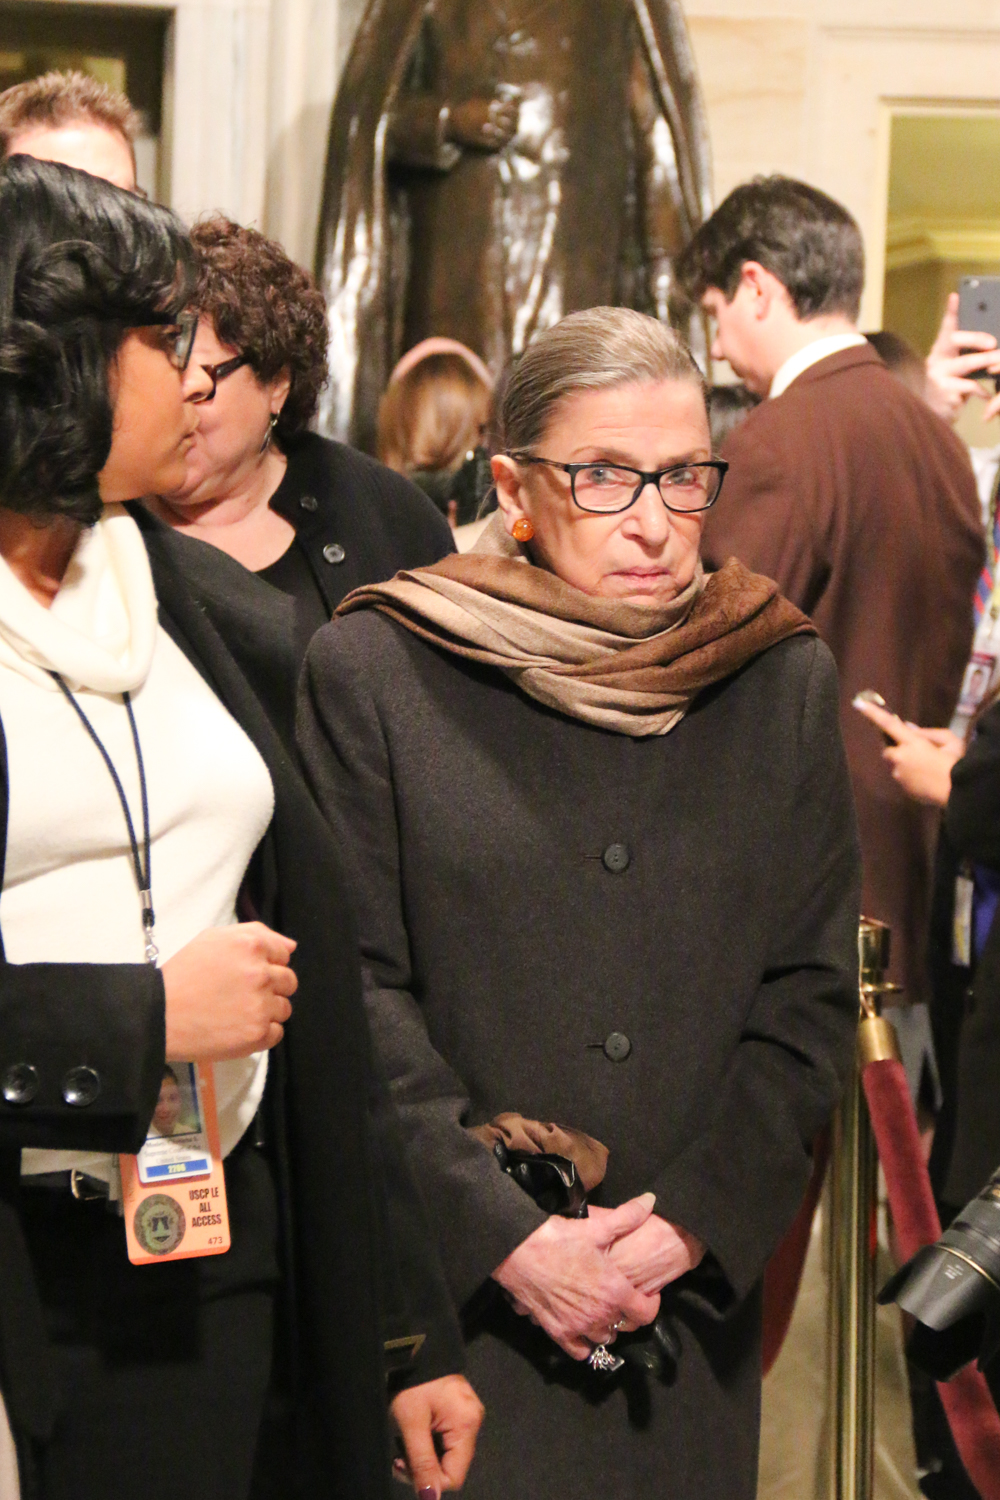 Supreme Court Justice Ruth Bader Ginsburg walks through Statuary Hall en route to the chamber.